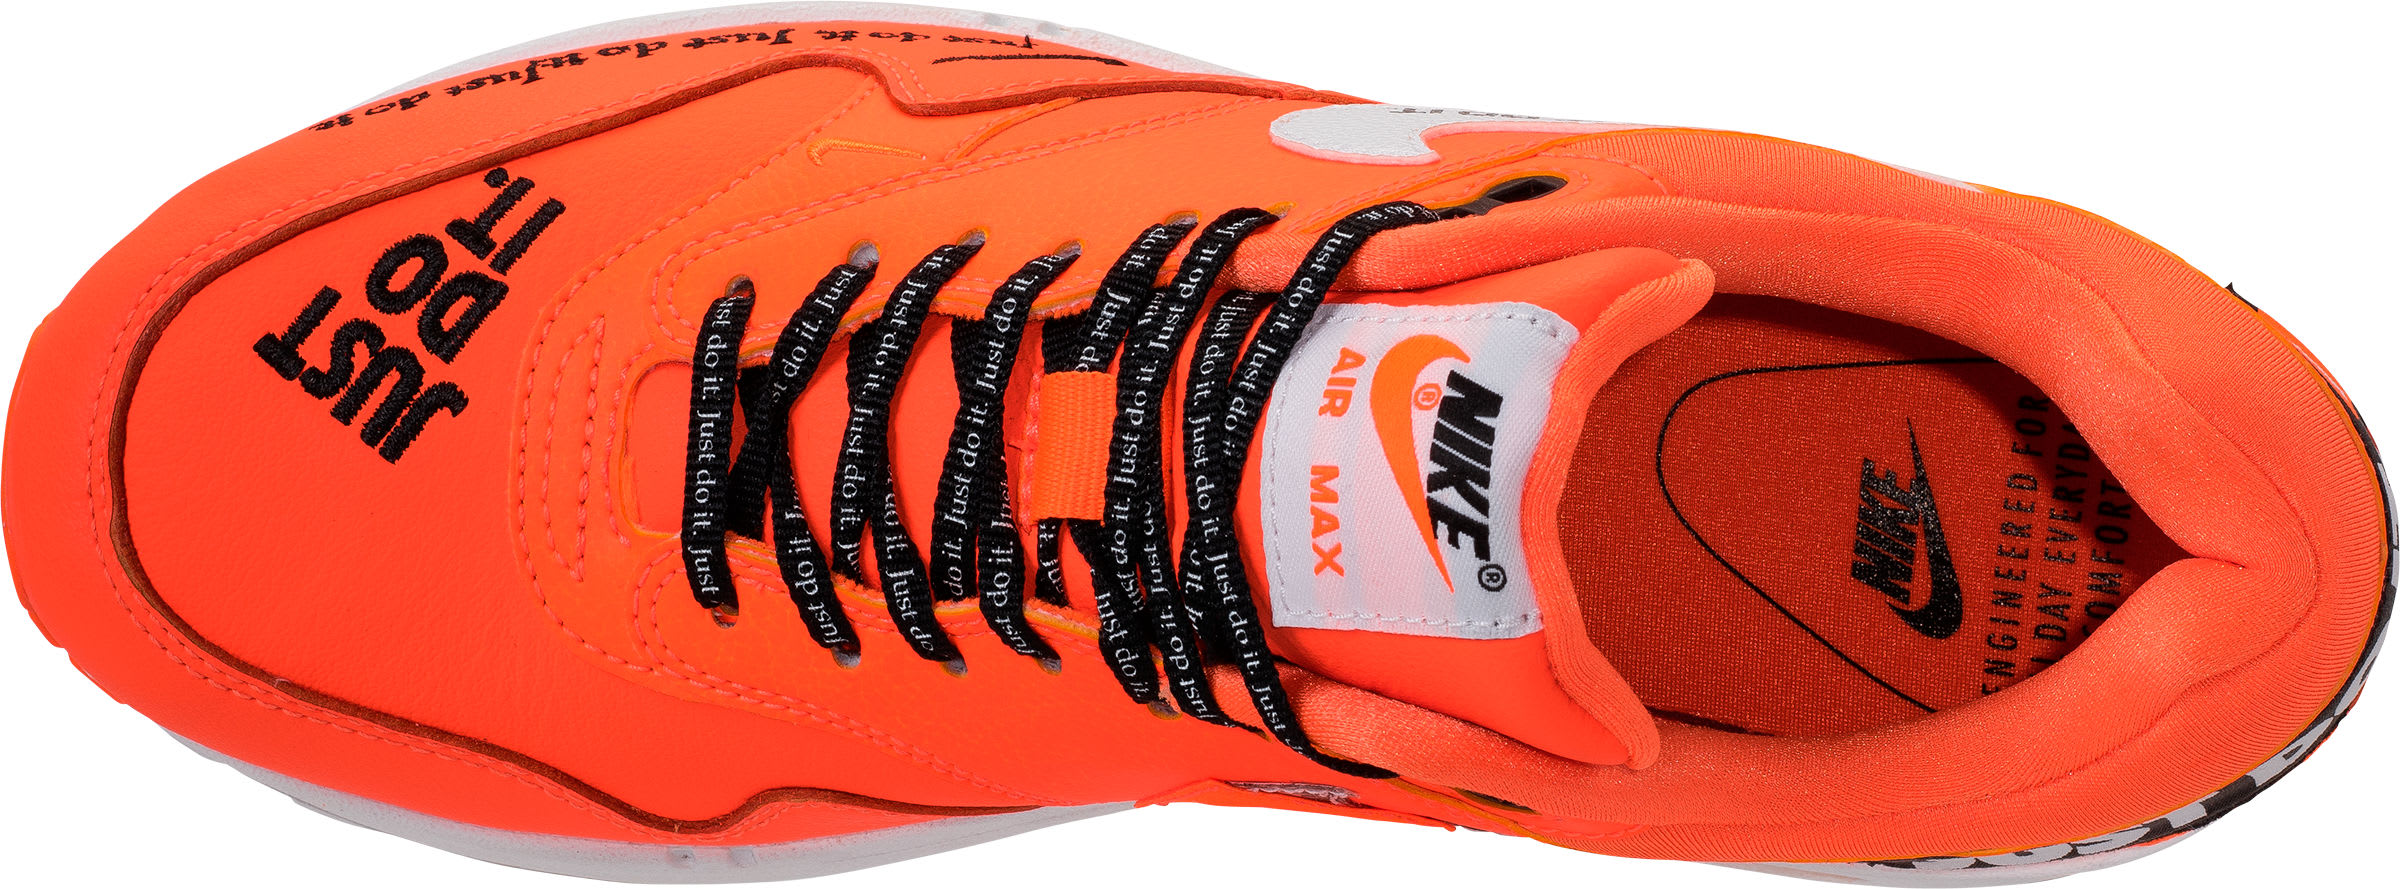 Nike Air Max 1 Just Do It Orange Release Date 917691-800 Top